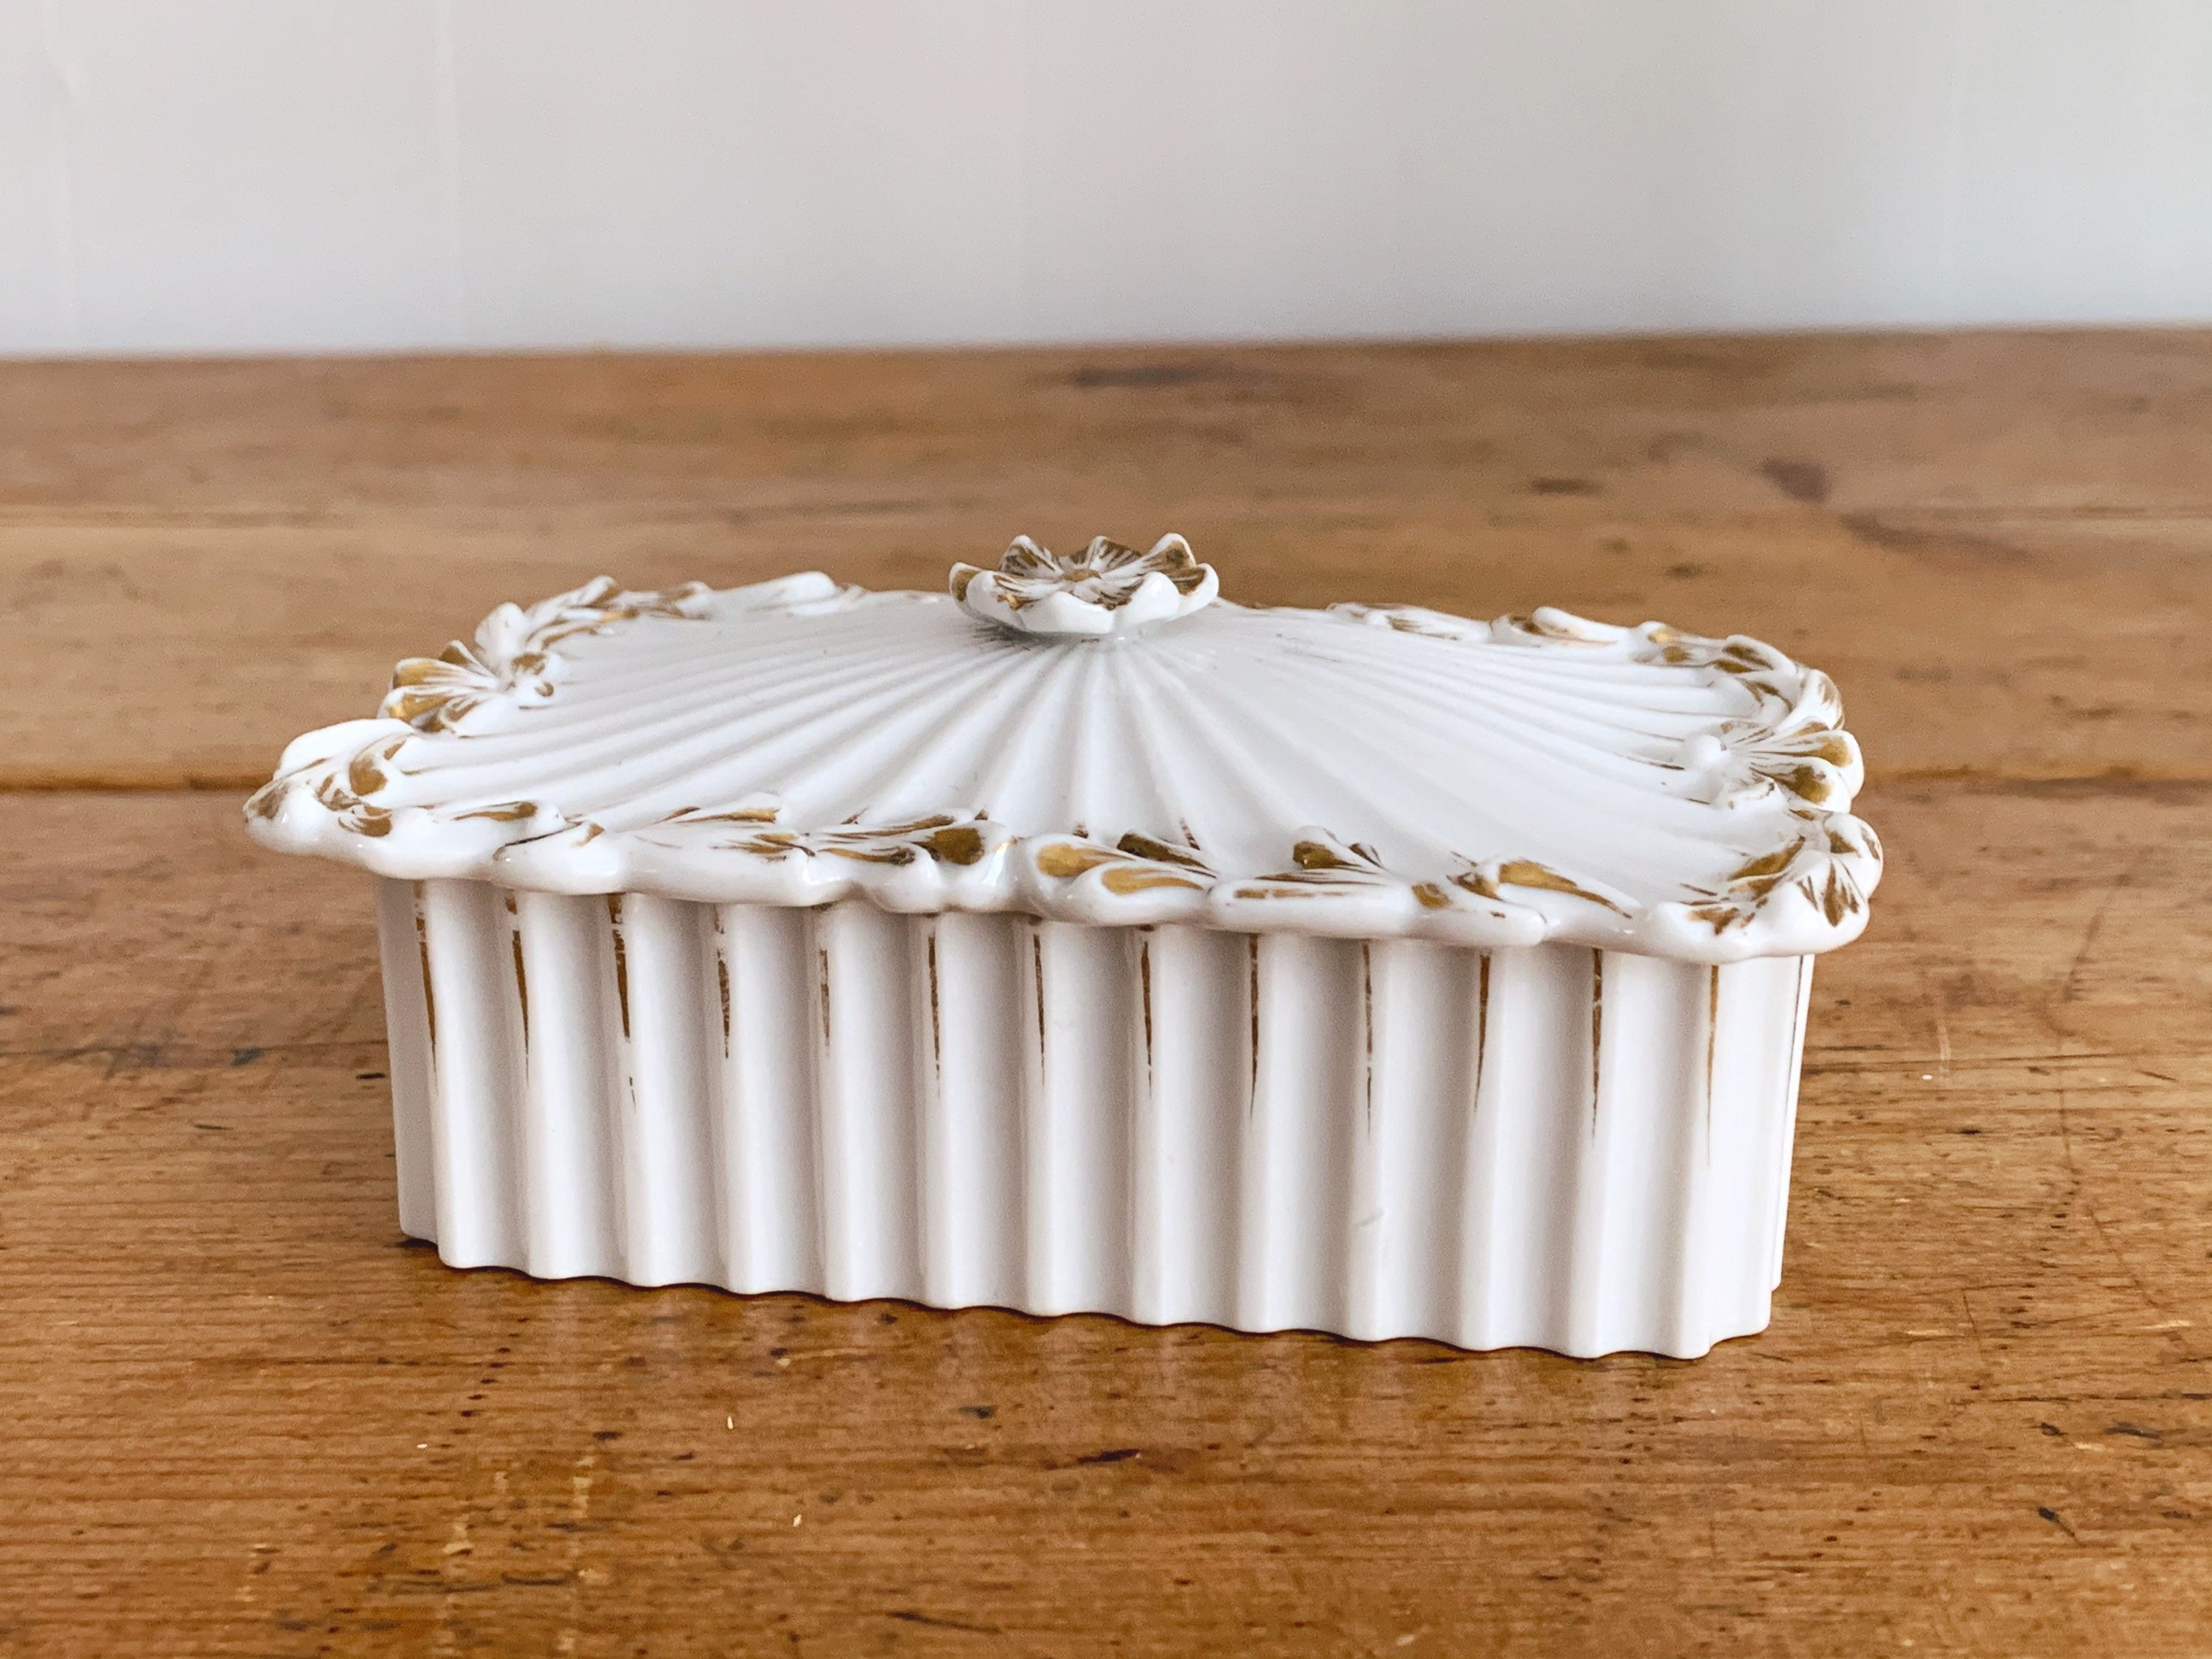 Antique French Gilded White Porcelain Jewelry Box with Lid | Vintage Keepsake Storage Box